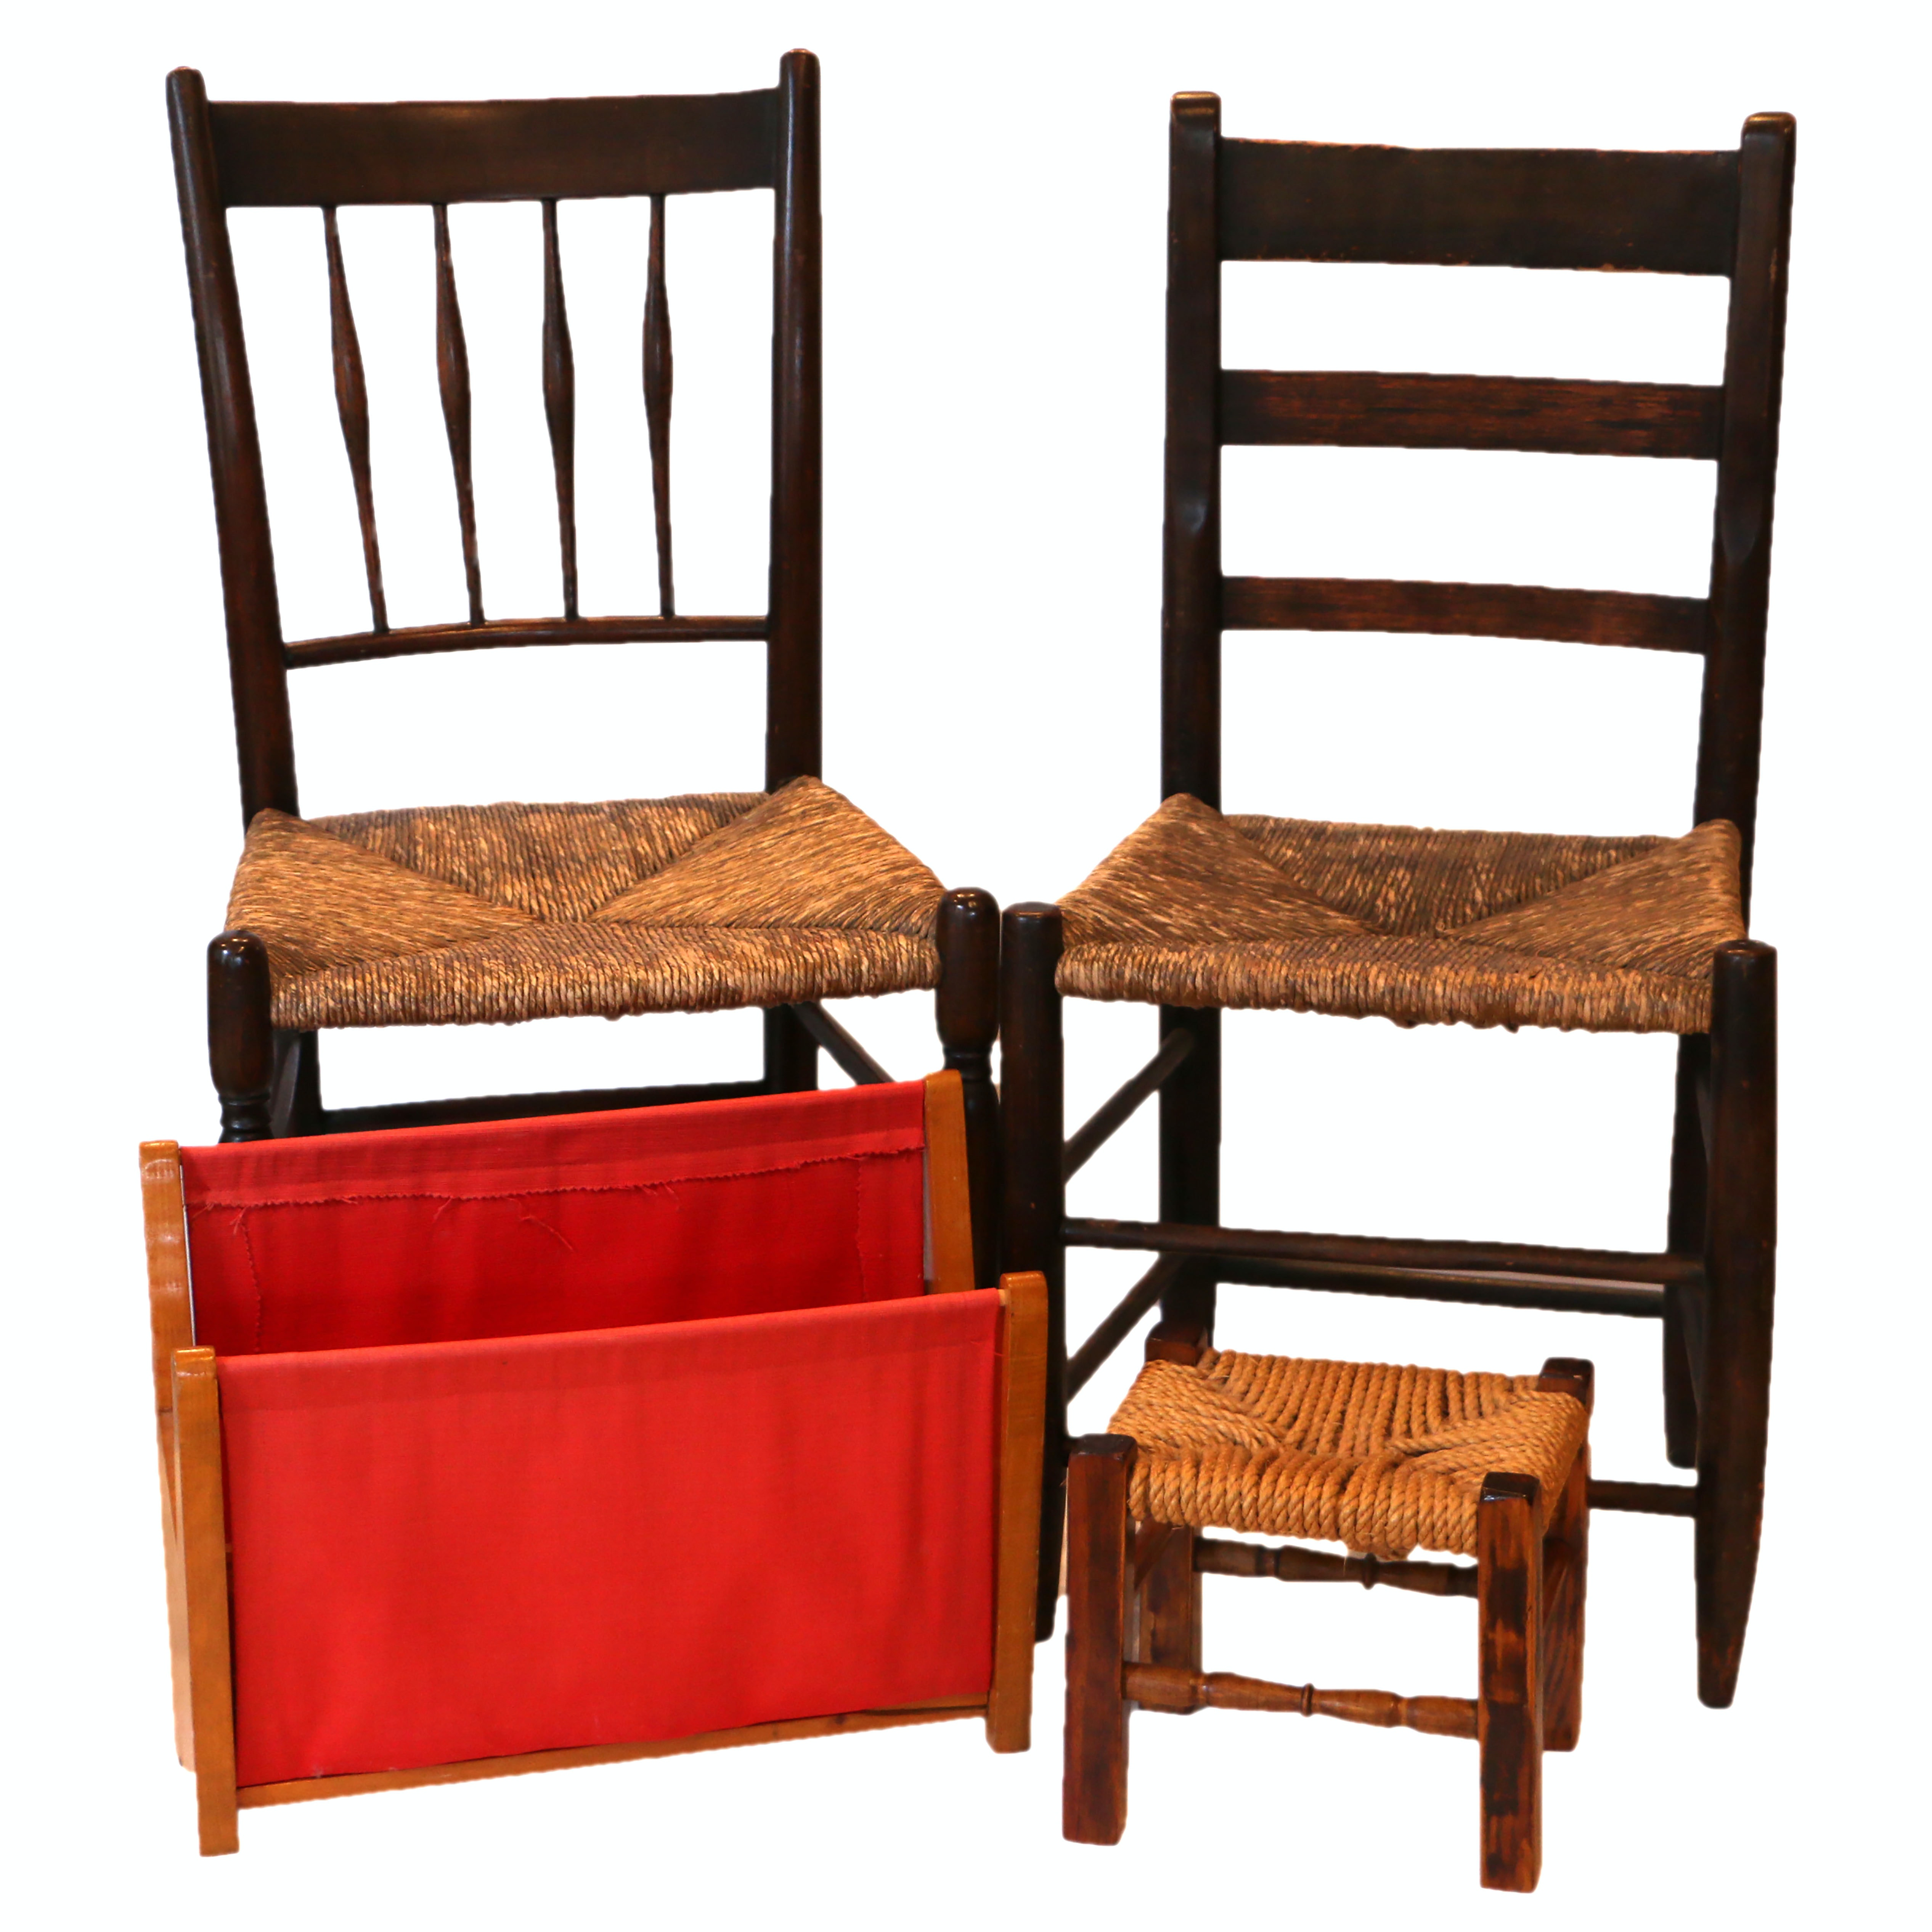 Rush Woven and Wooden Chairs , Footstool, Magazine Rack